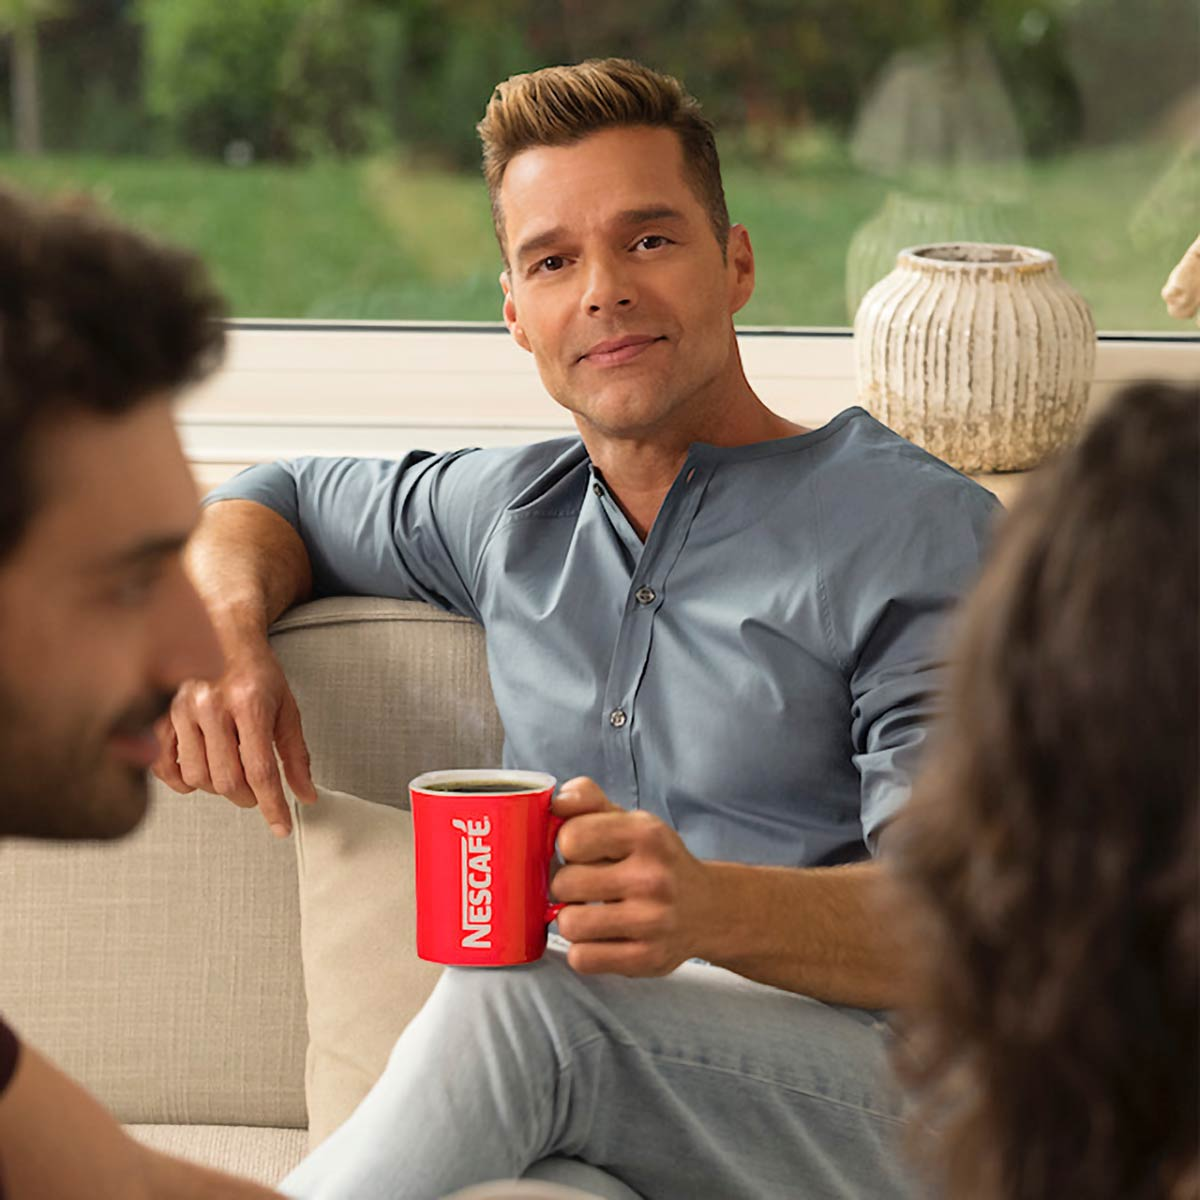 Nescafe advertising - Ricky Martin - Grooming Massimo Serini